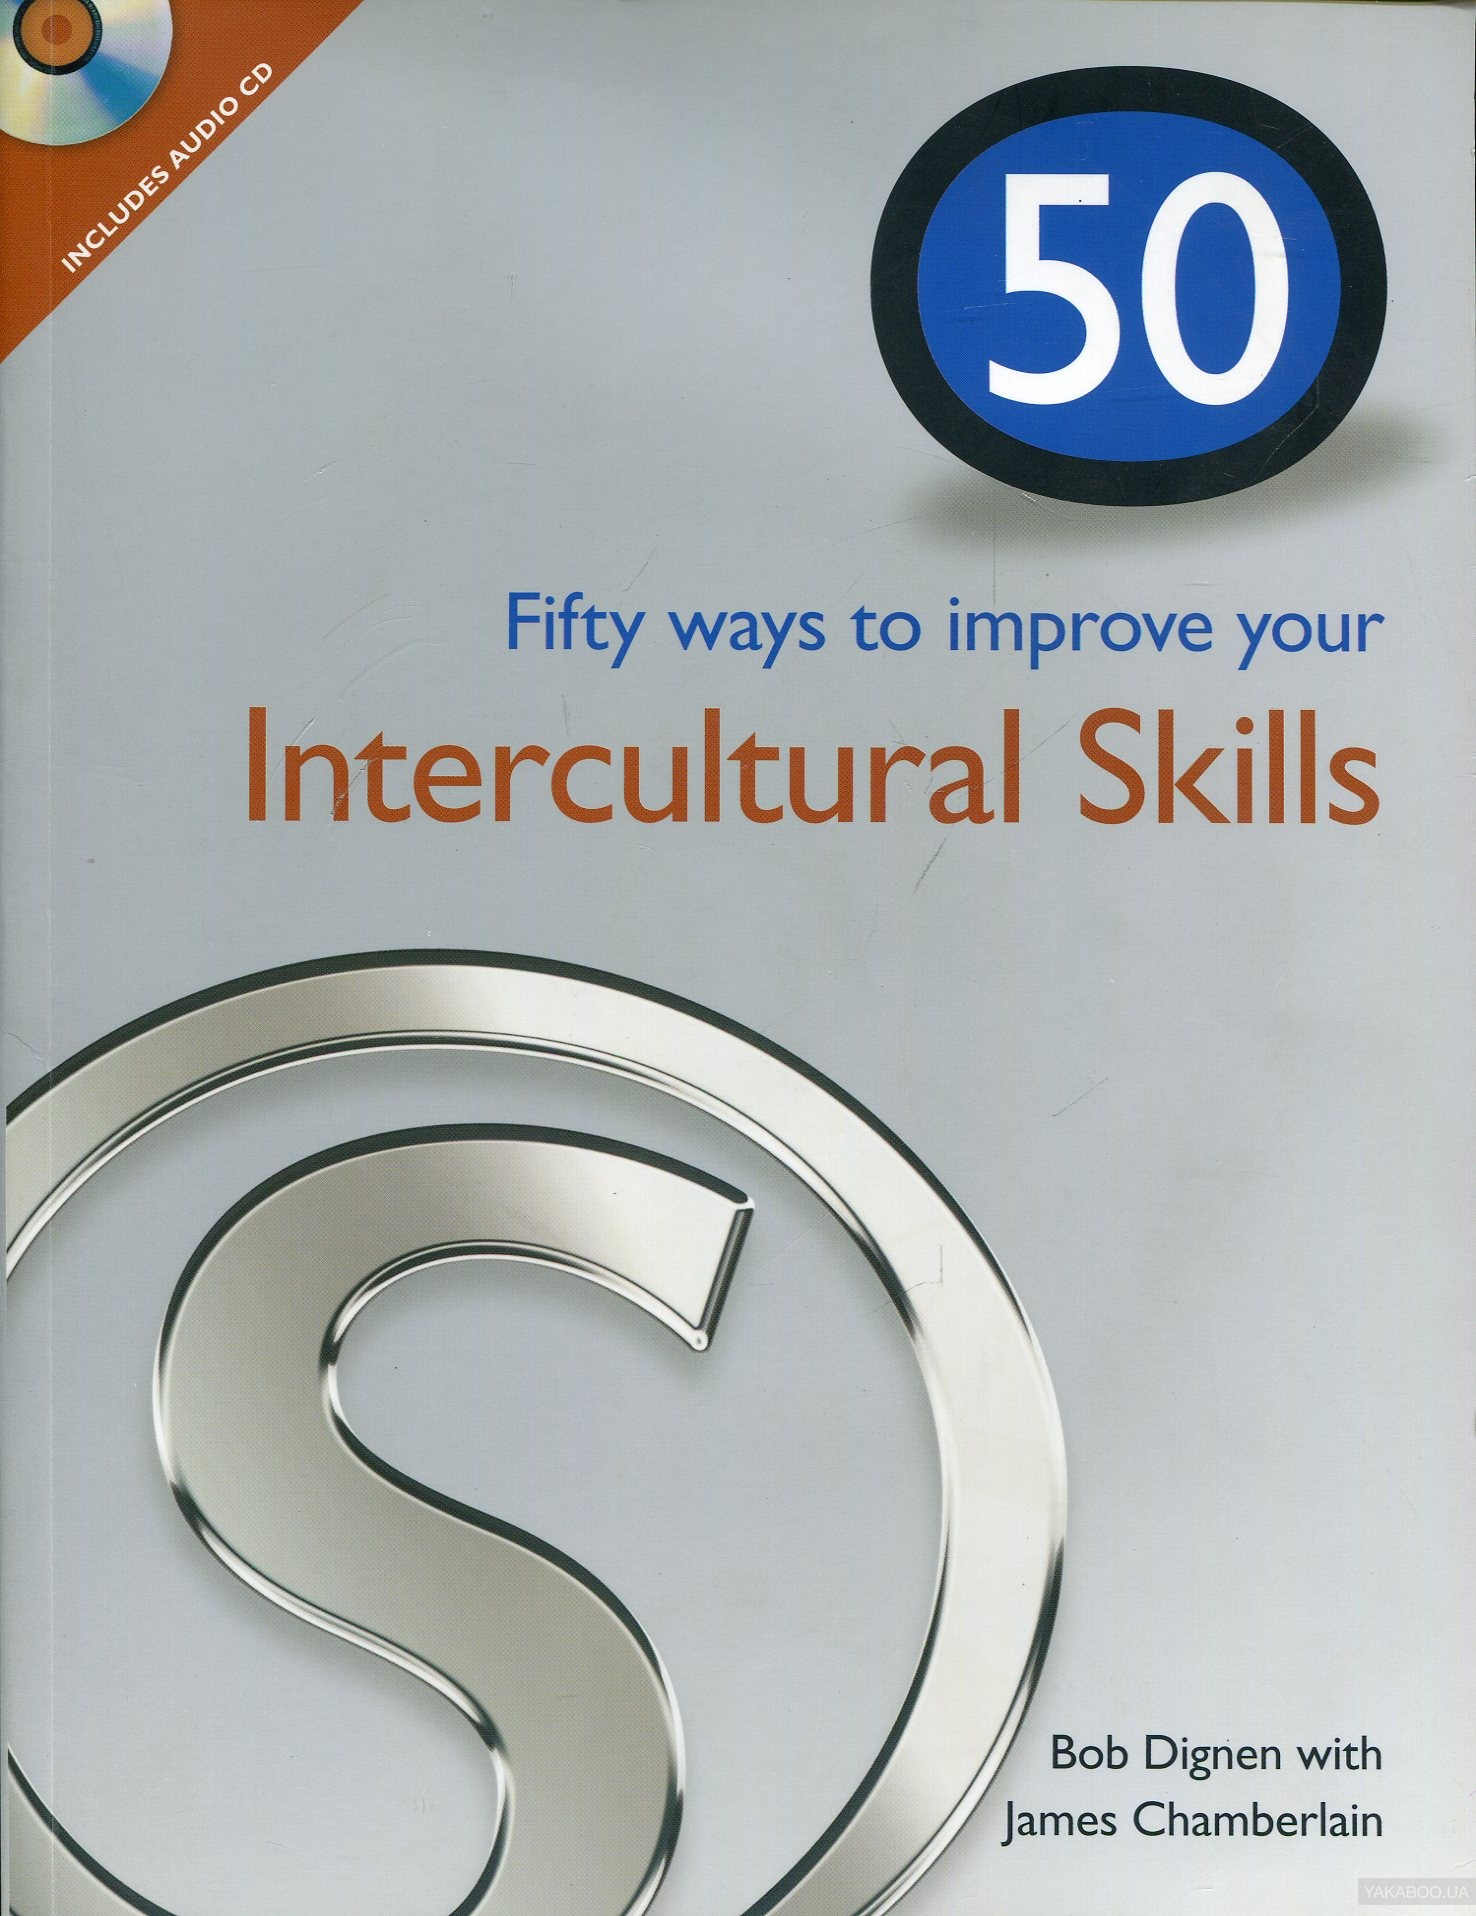 50 ways to improve your intercultural